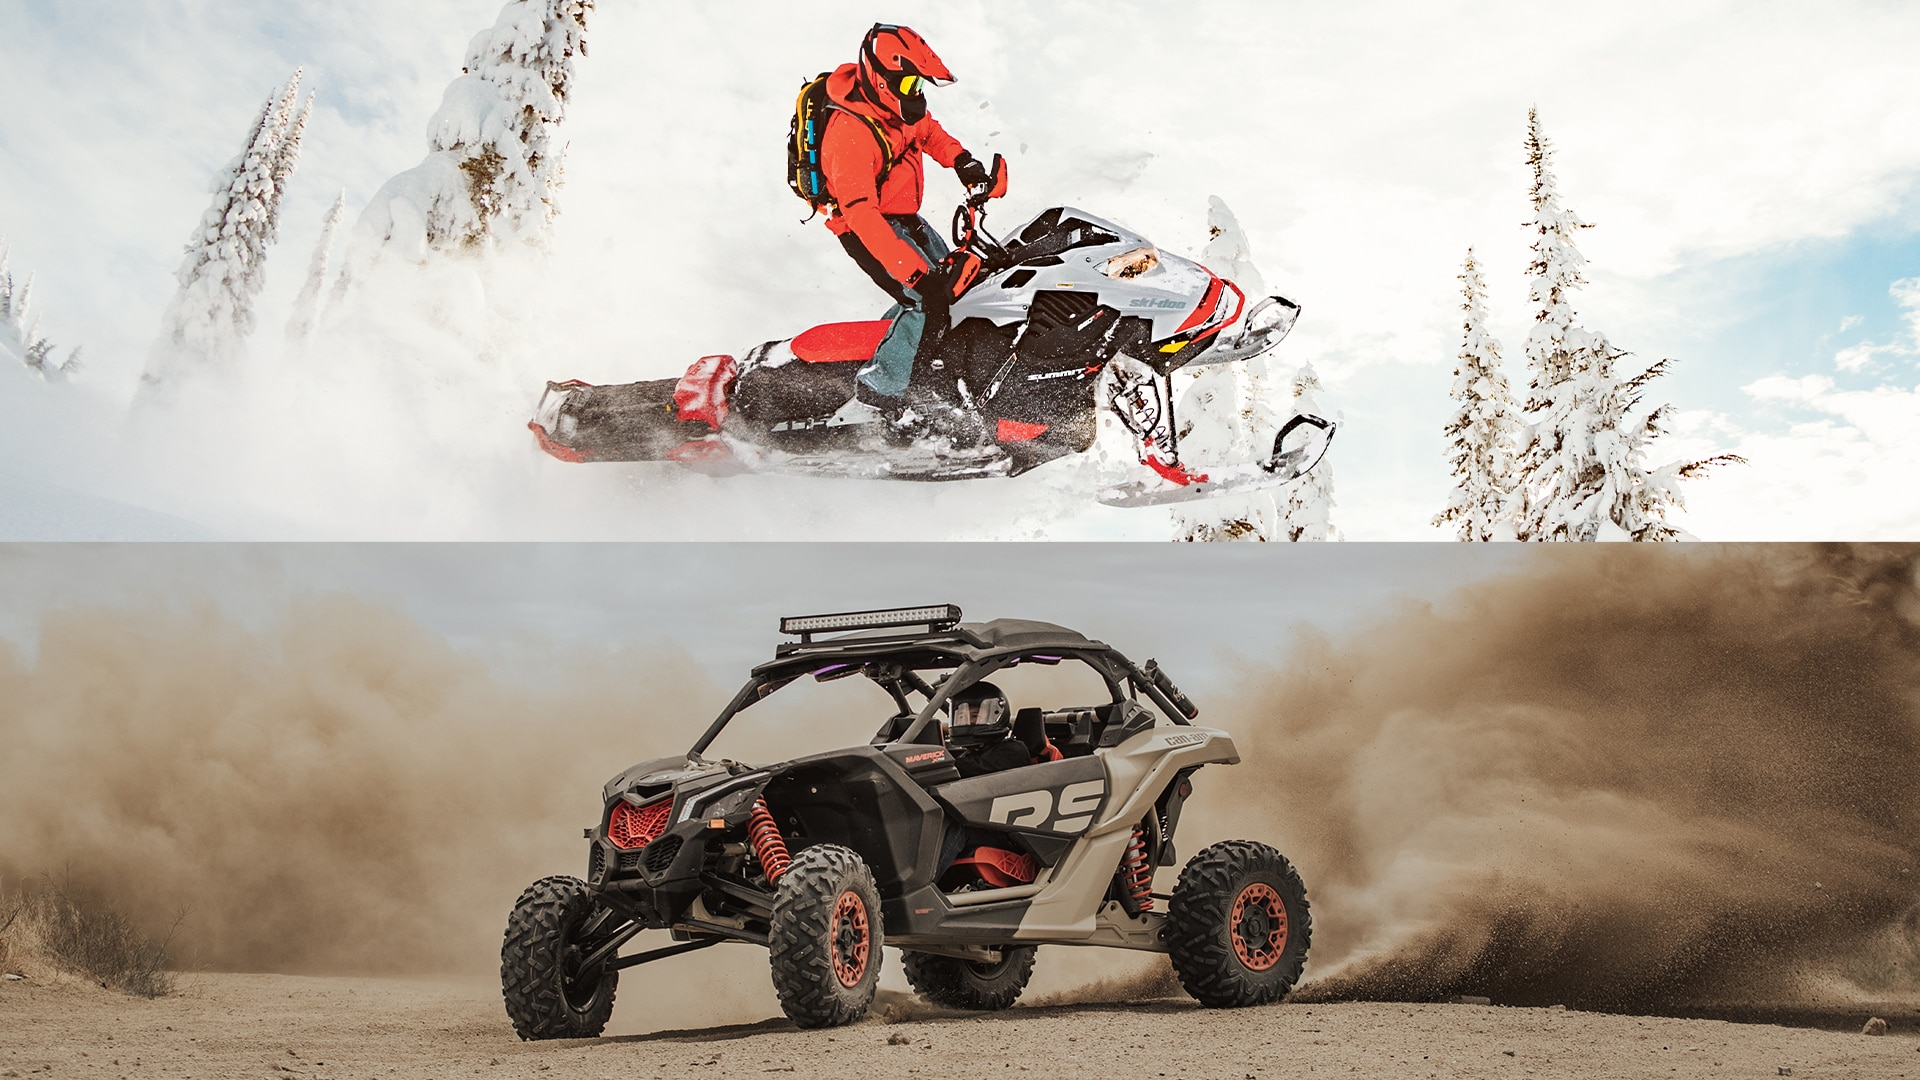 Snowmobile or Off-Road, find your freedom in every season